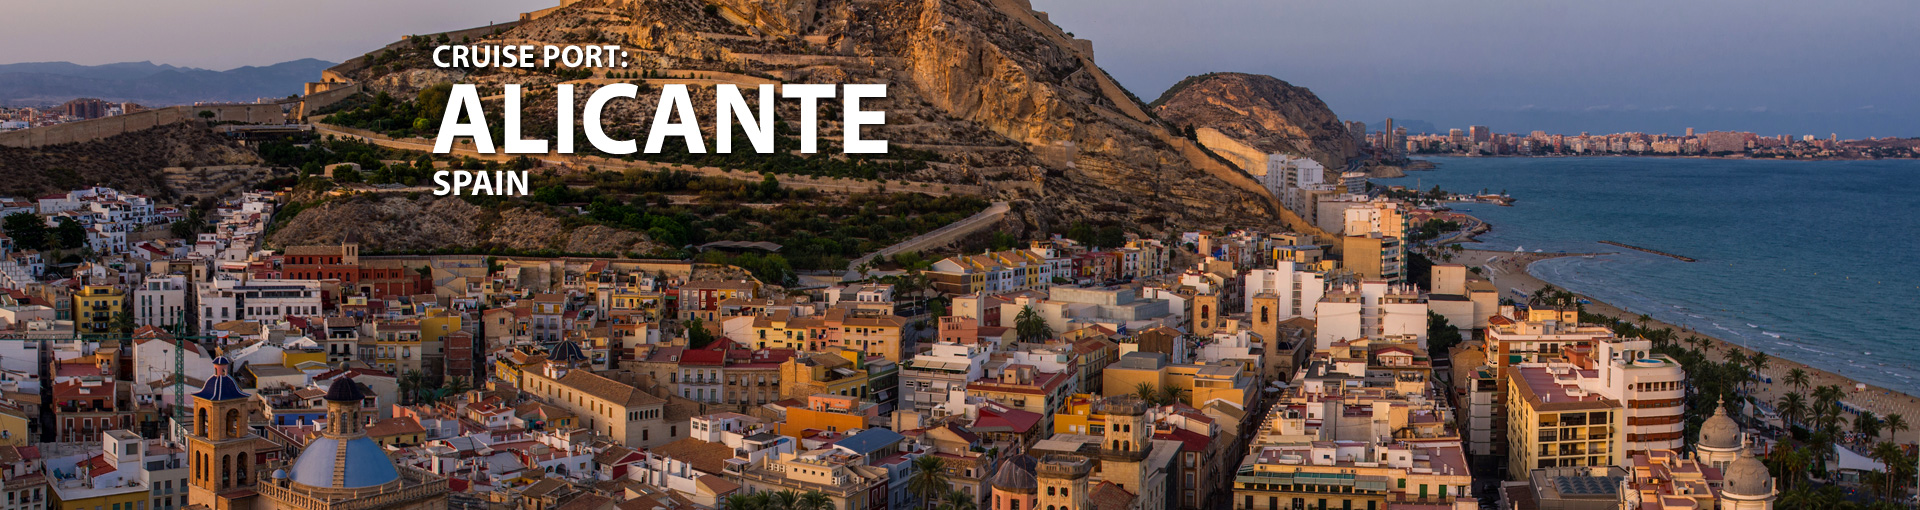 Cruise Port:Alicante, Spain